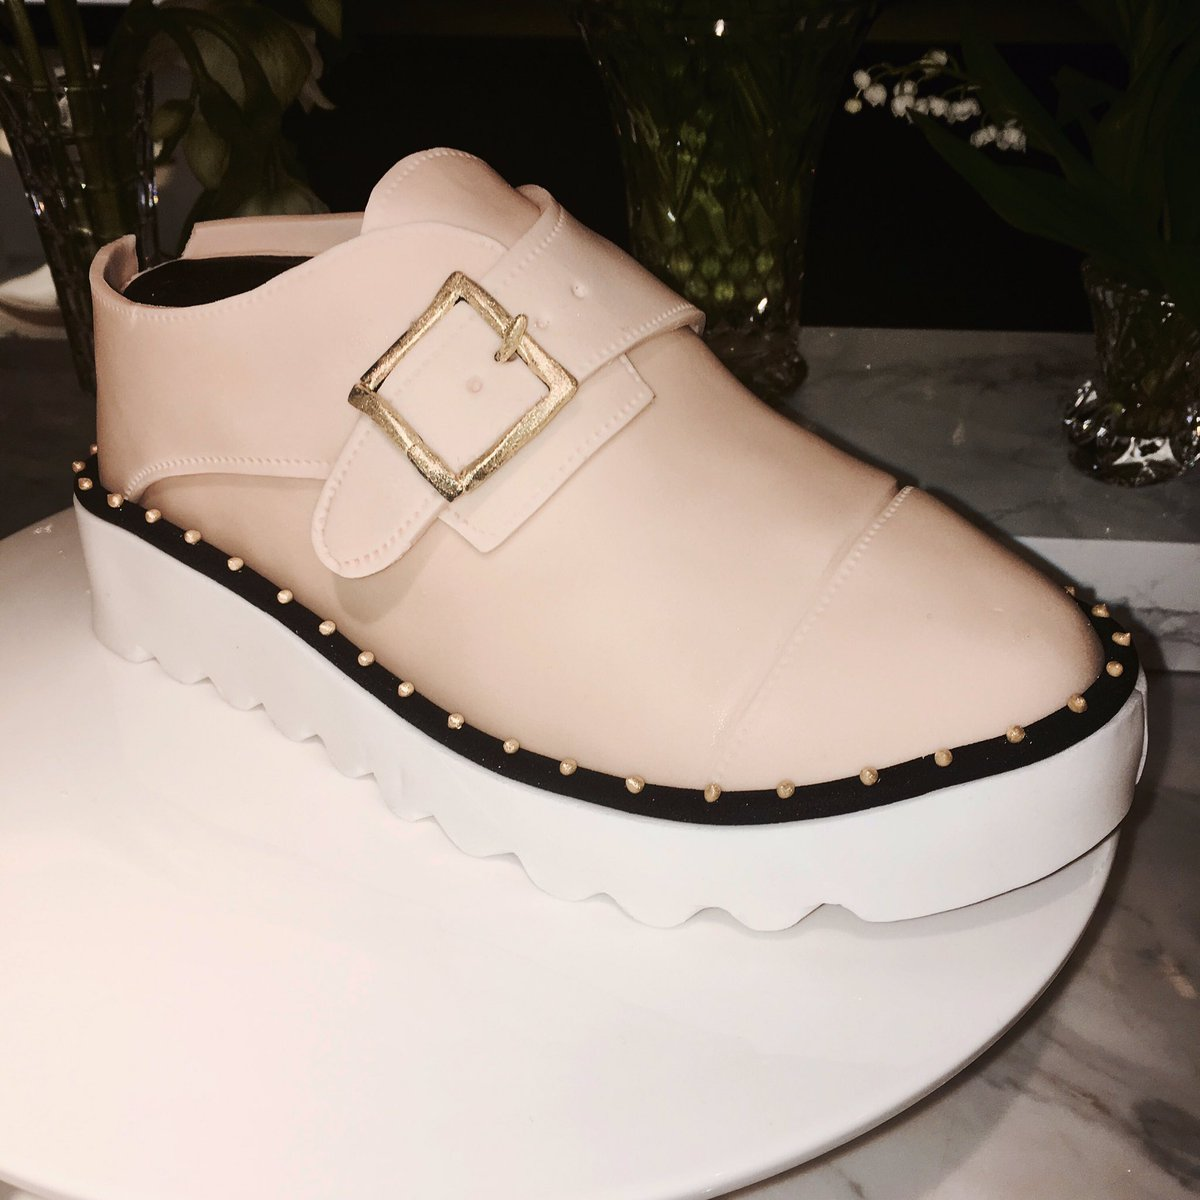 Is it a cake… or a shoe… or an #OdetteShoes cake!? x Stella https://t.co/MaXC4pimnx